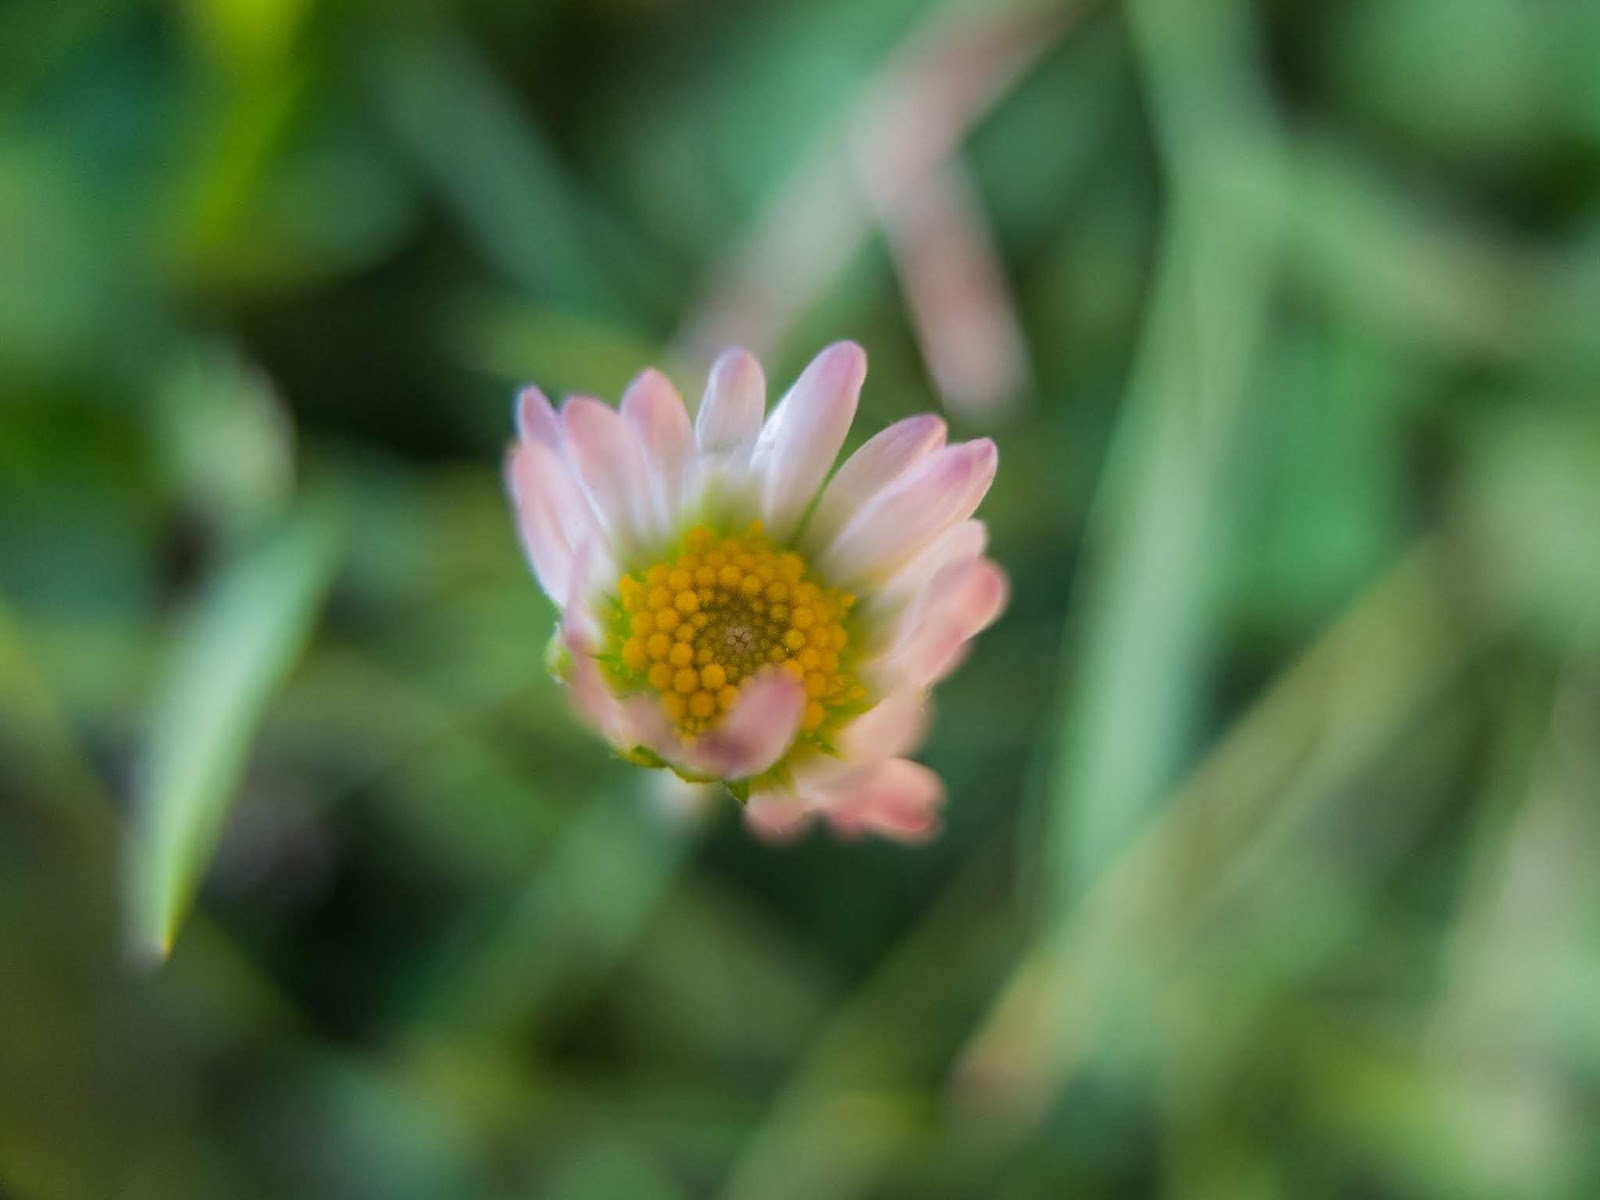 A macro of a small light pink Daisy captured among grass.